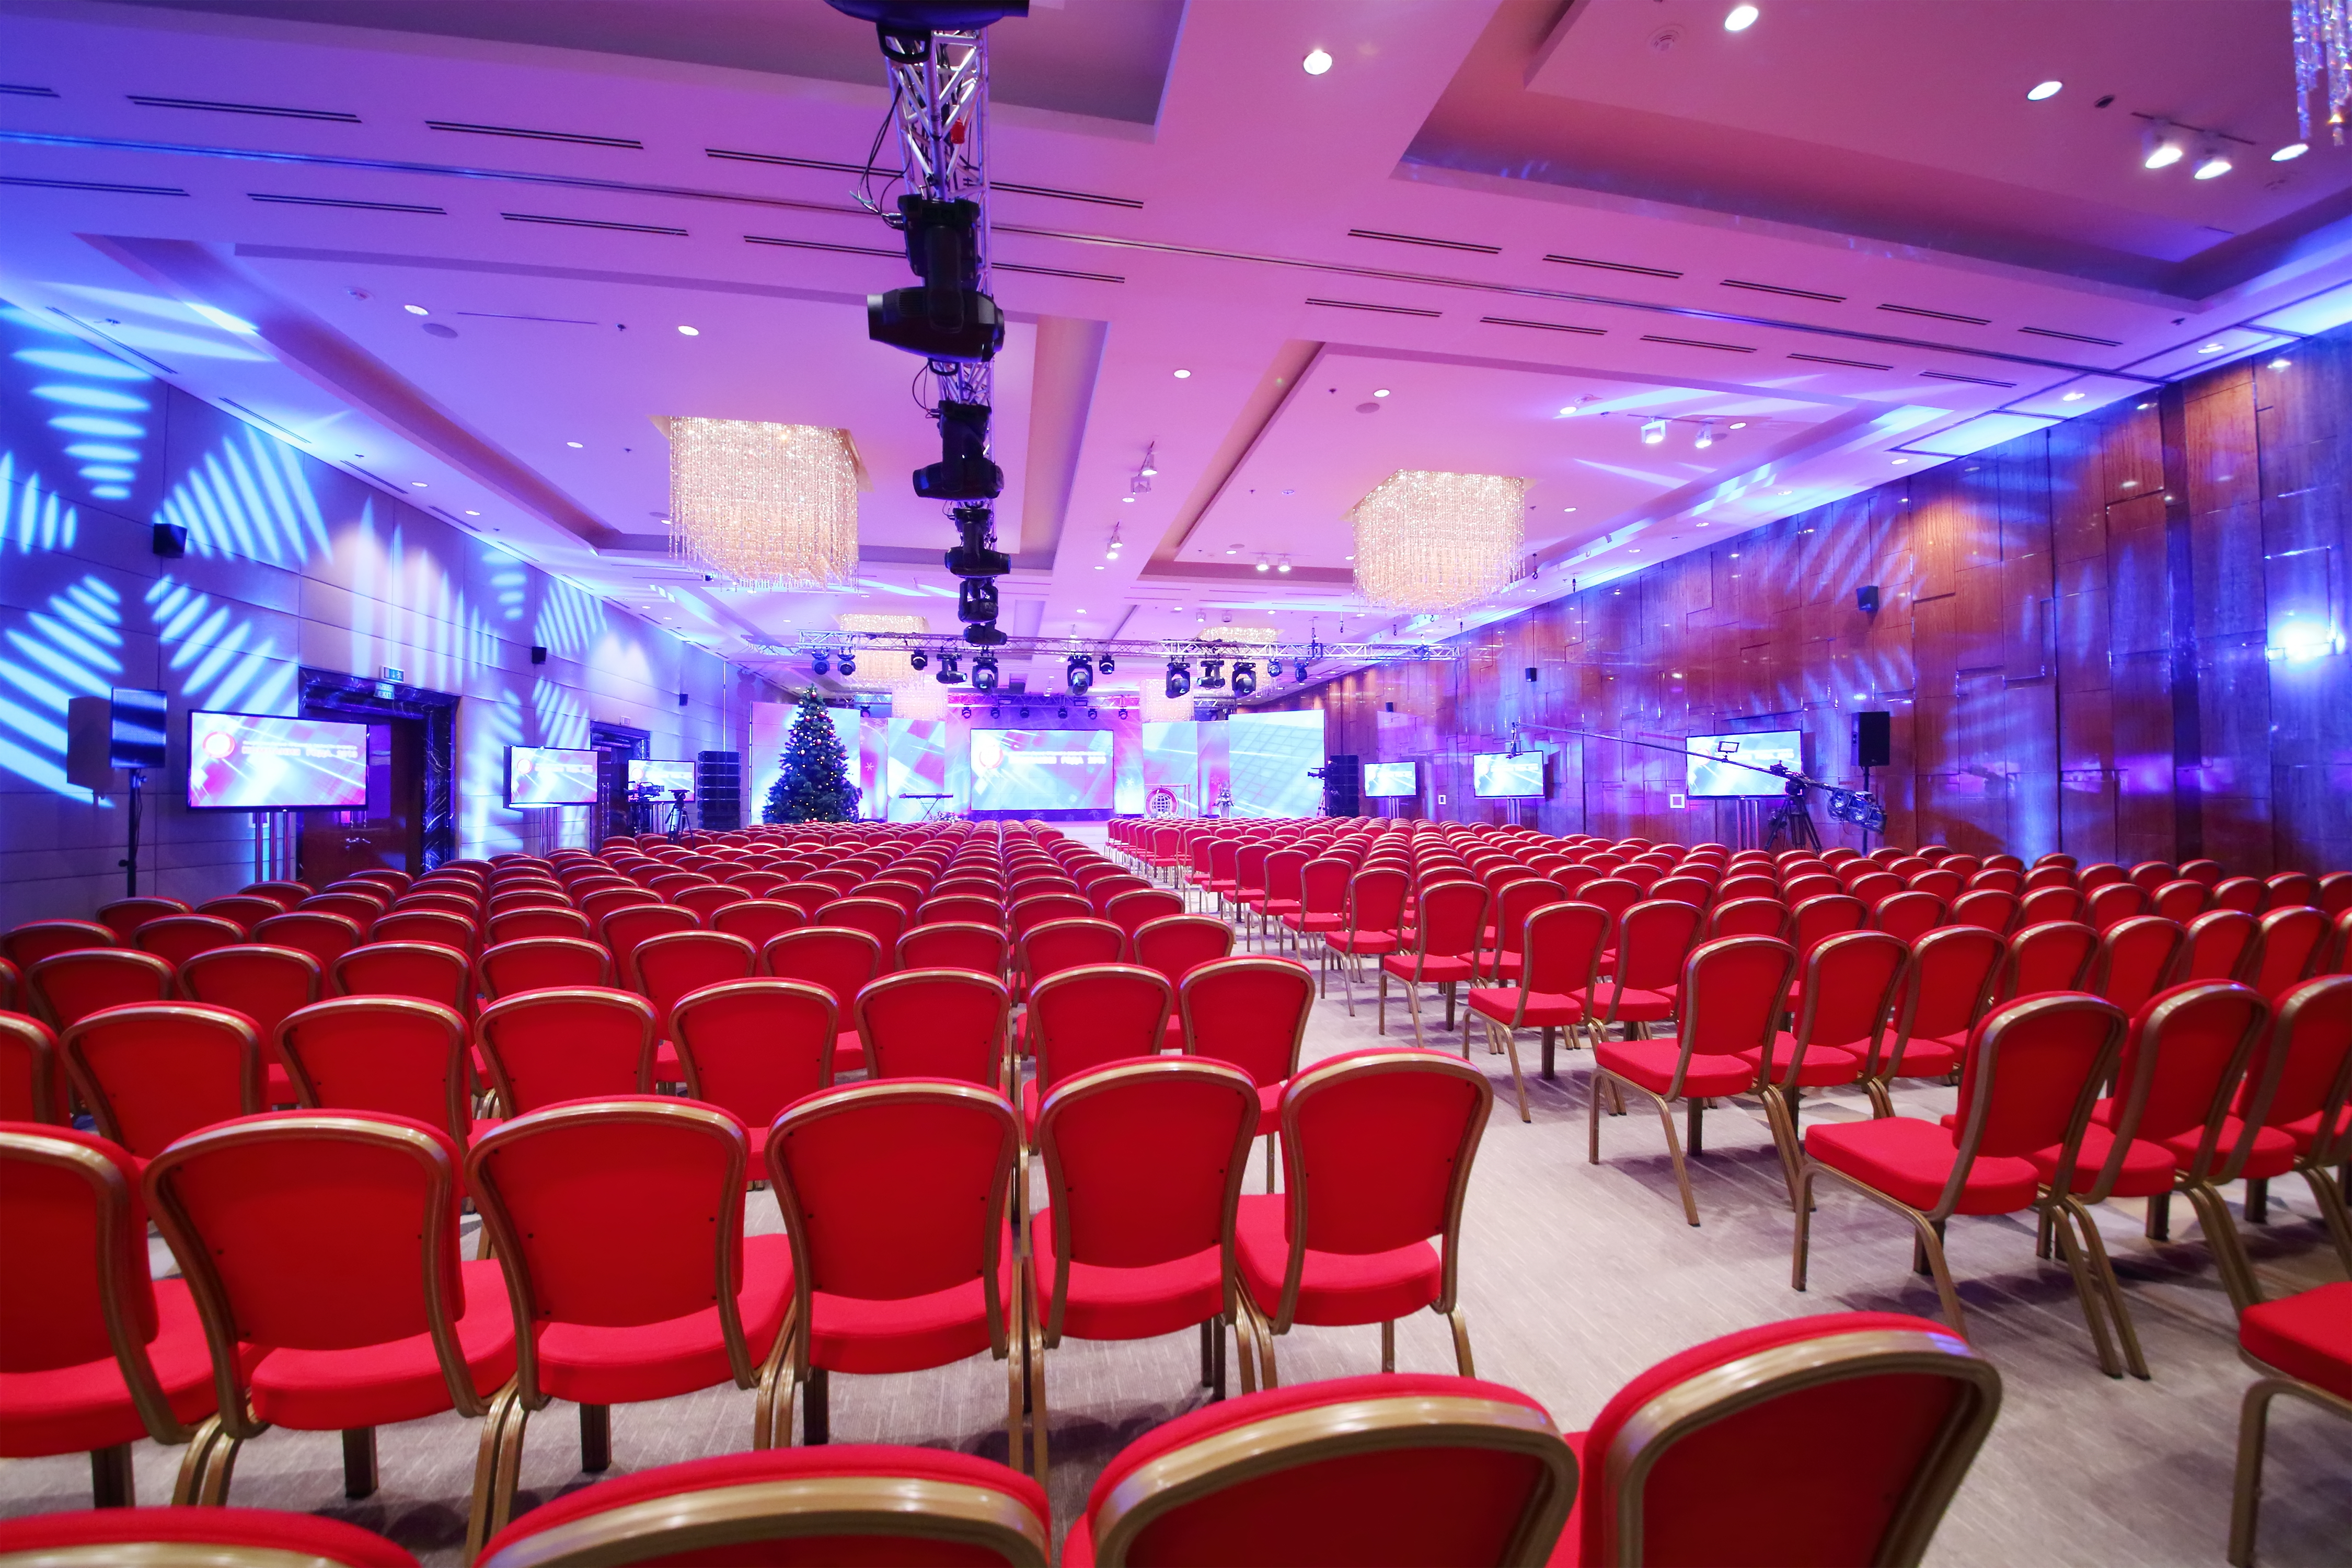 We provide a FREE UK venue search and full event management service